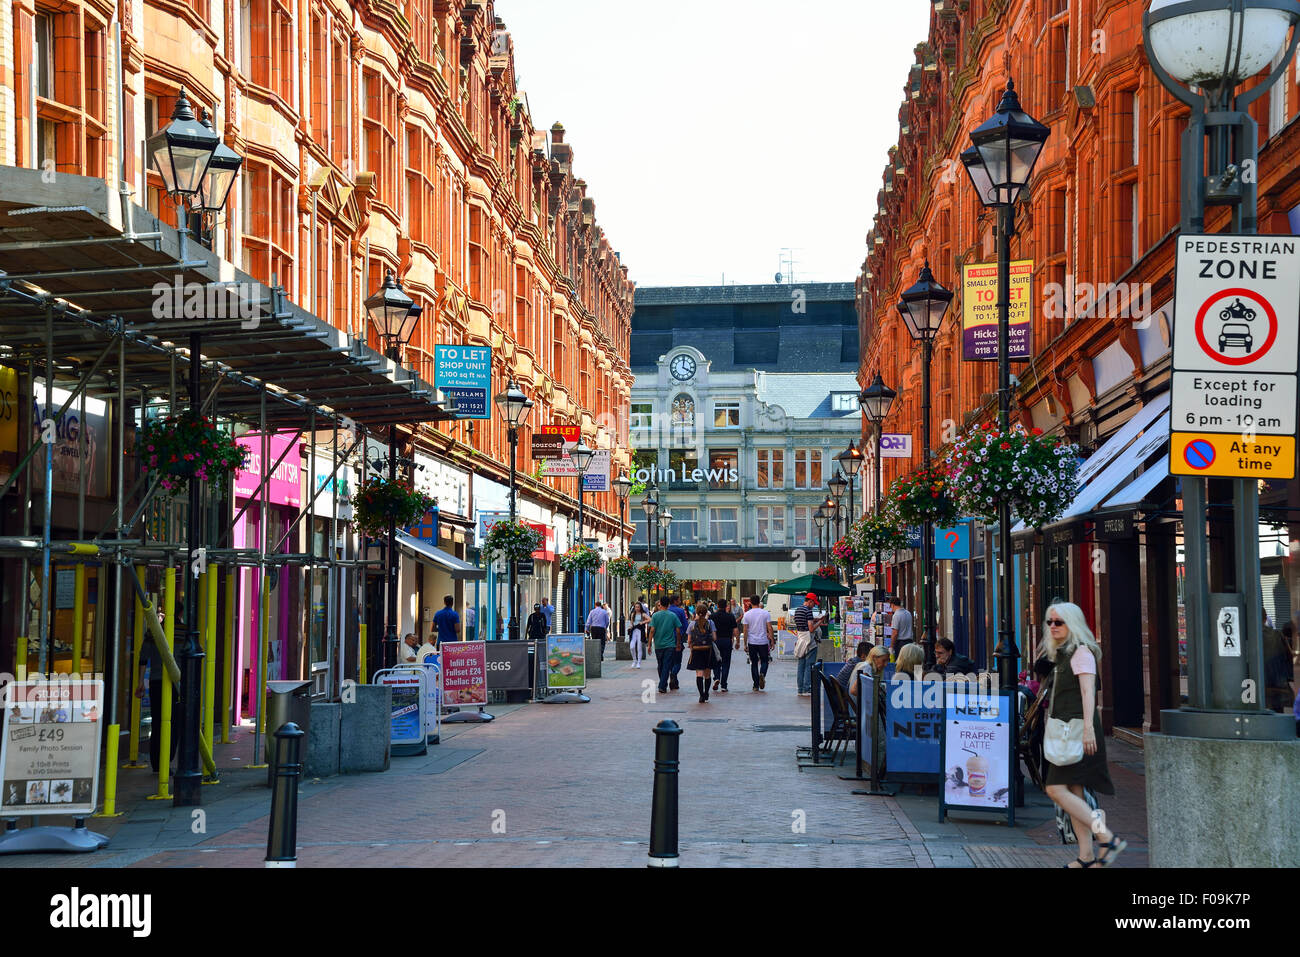 Queen Victoria Street, Reading, Berkshire, England, United Kingdom - Stock Image